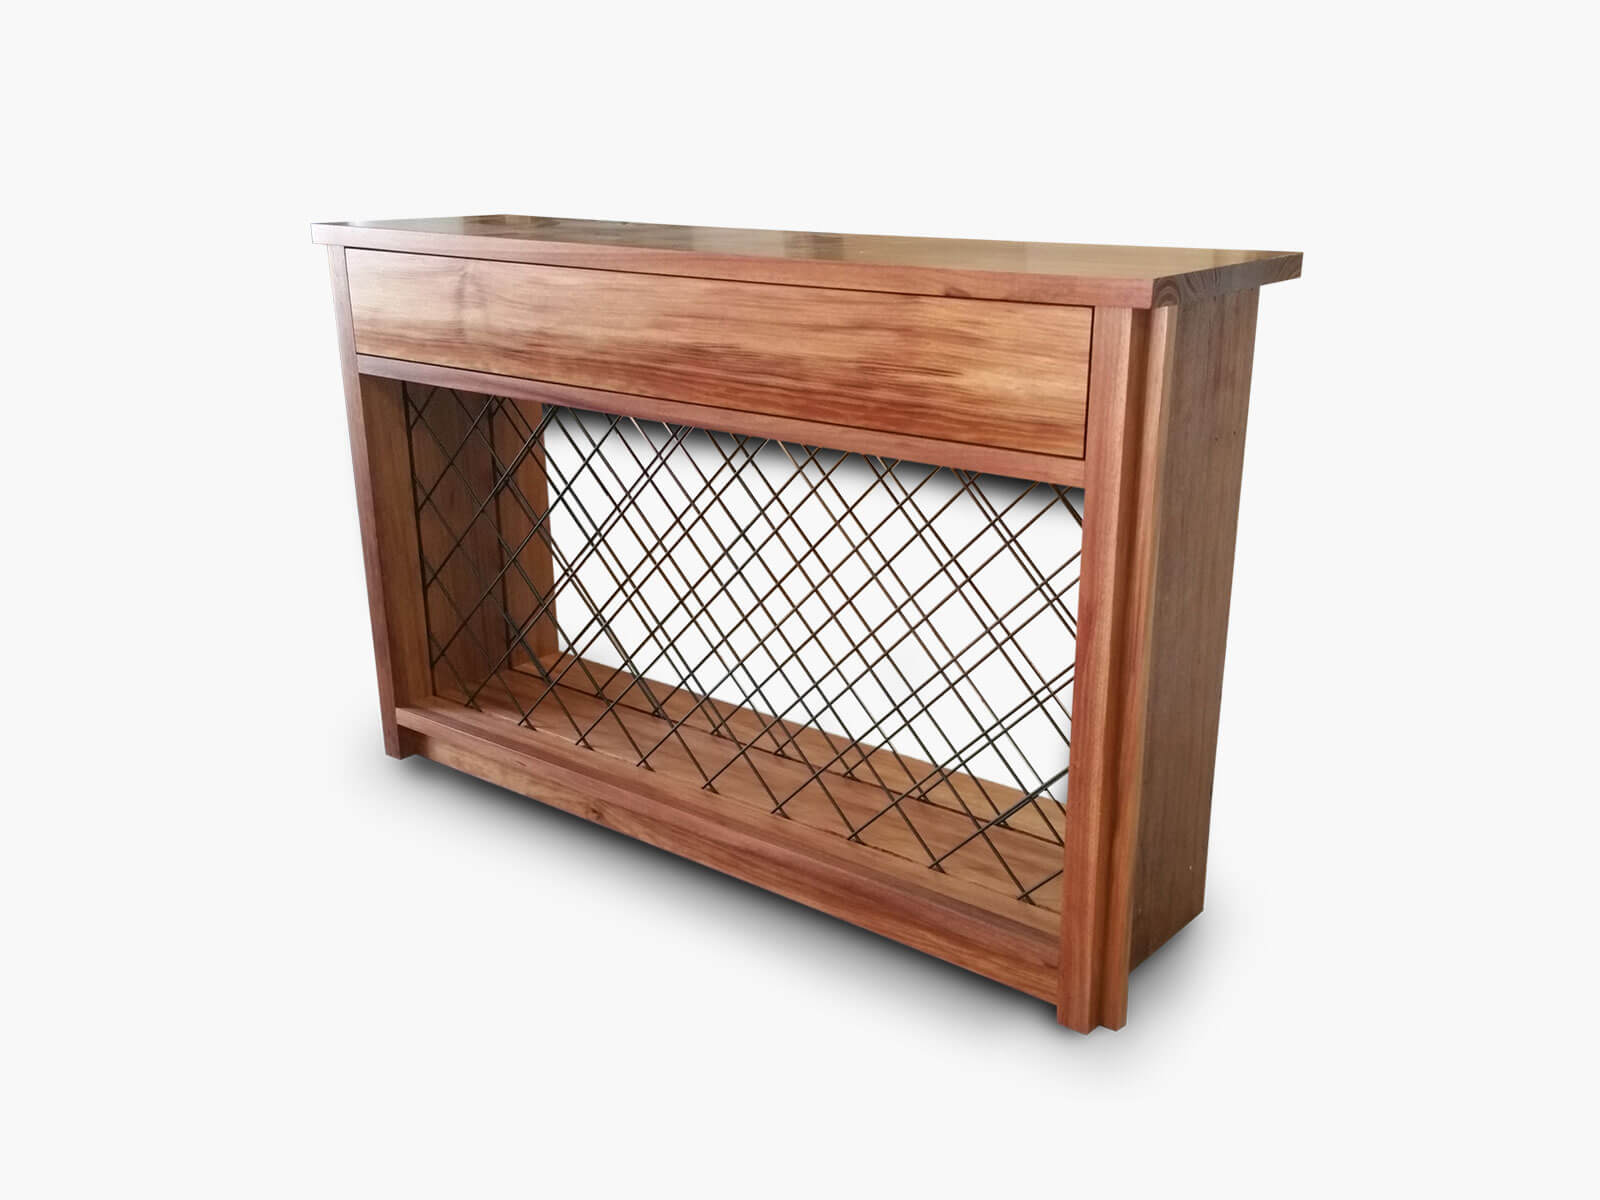 Stanmore-Winerack Timber Furniture